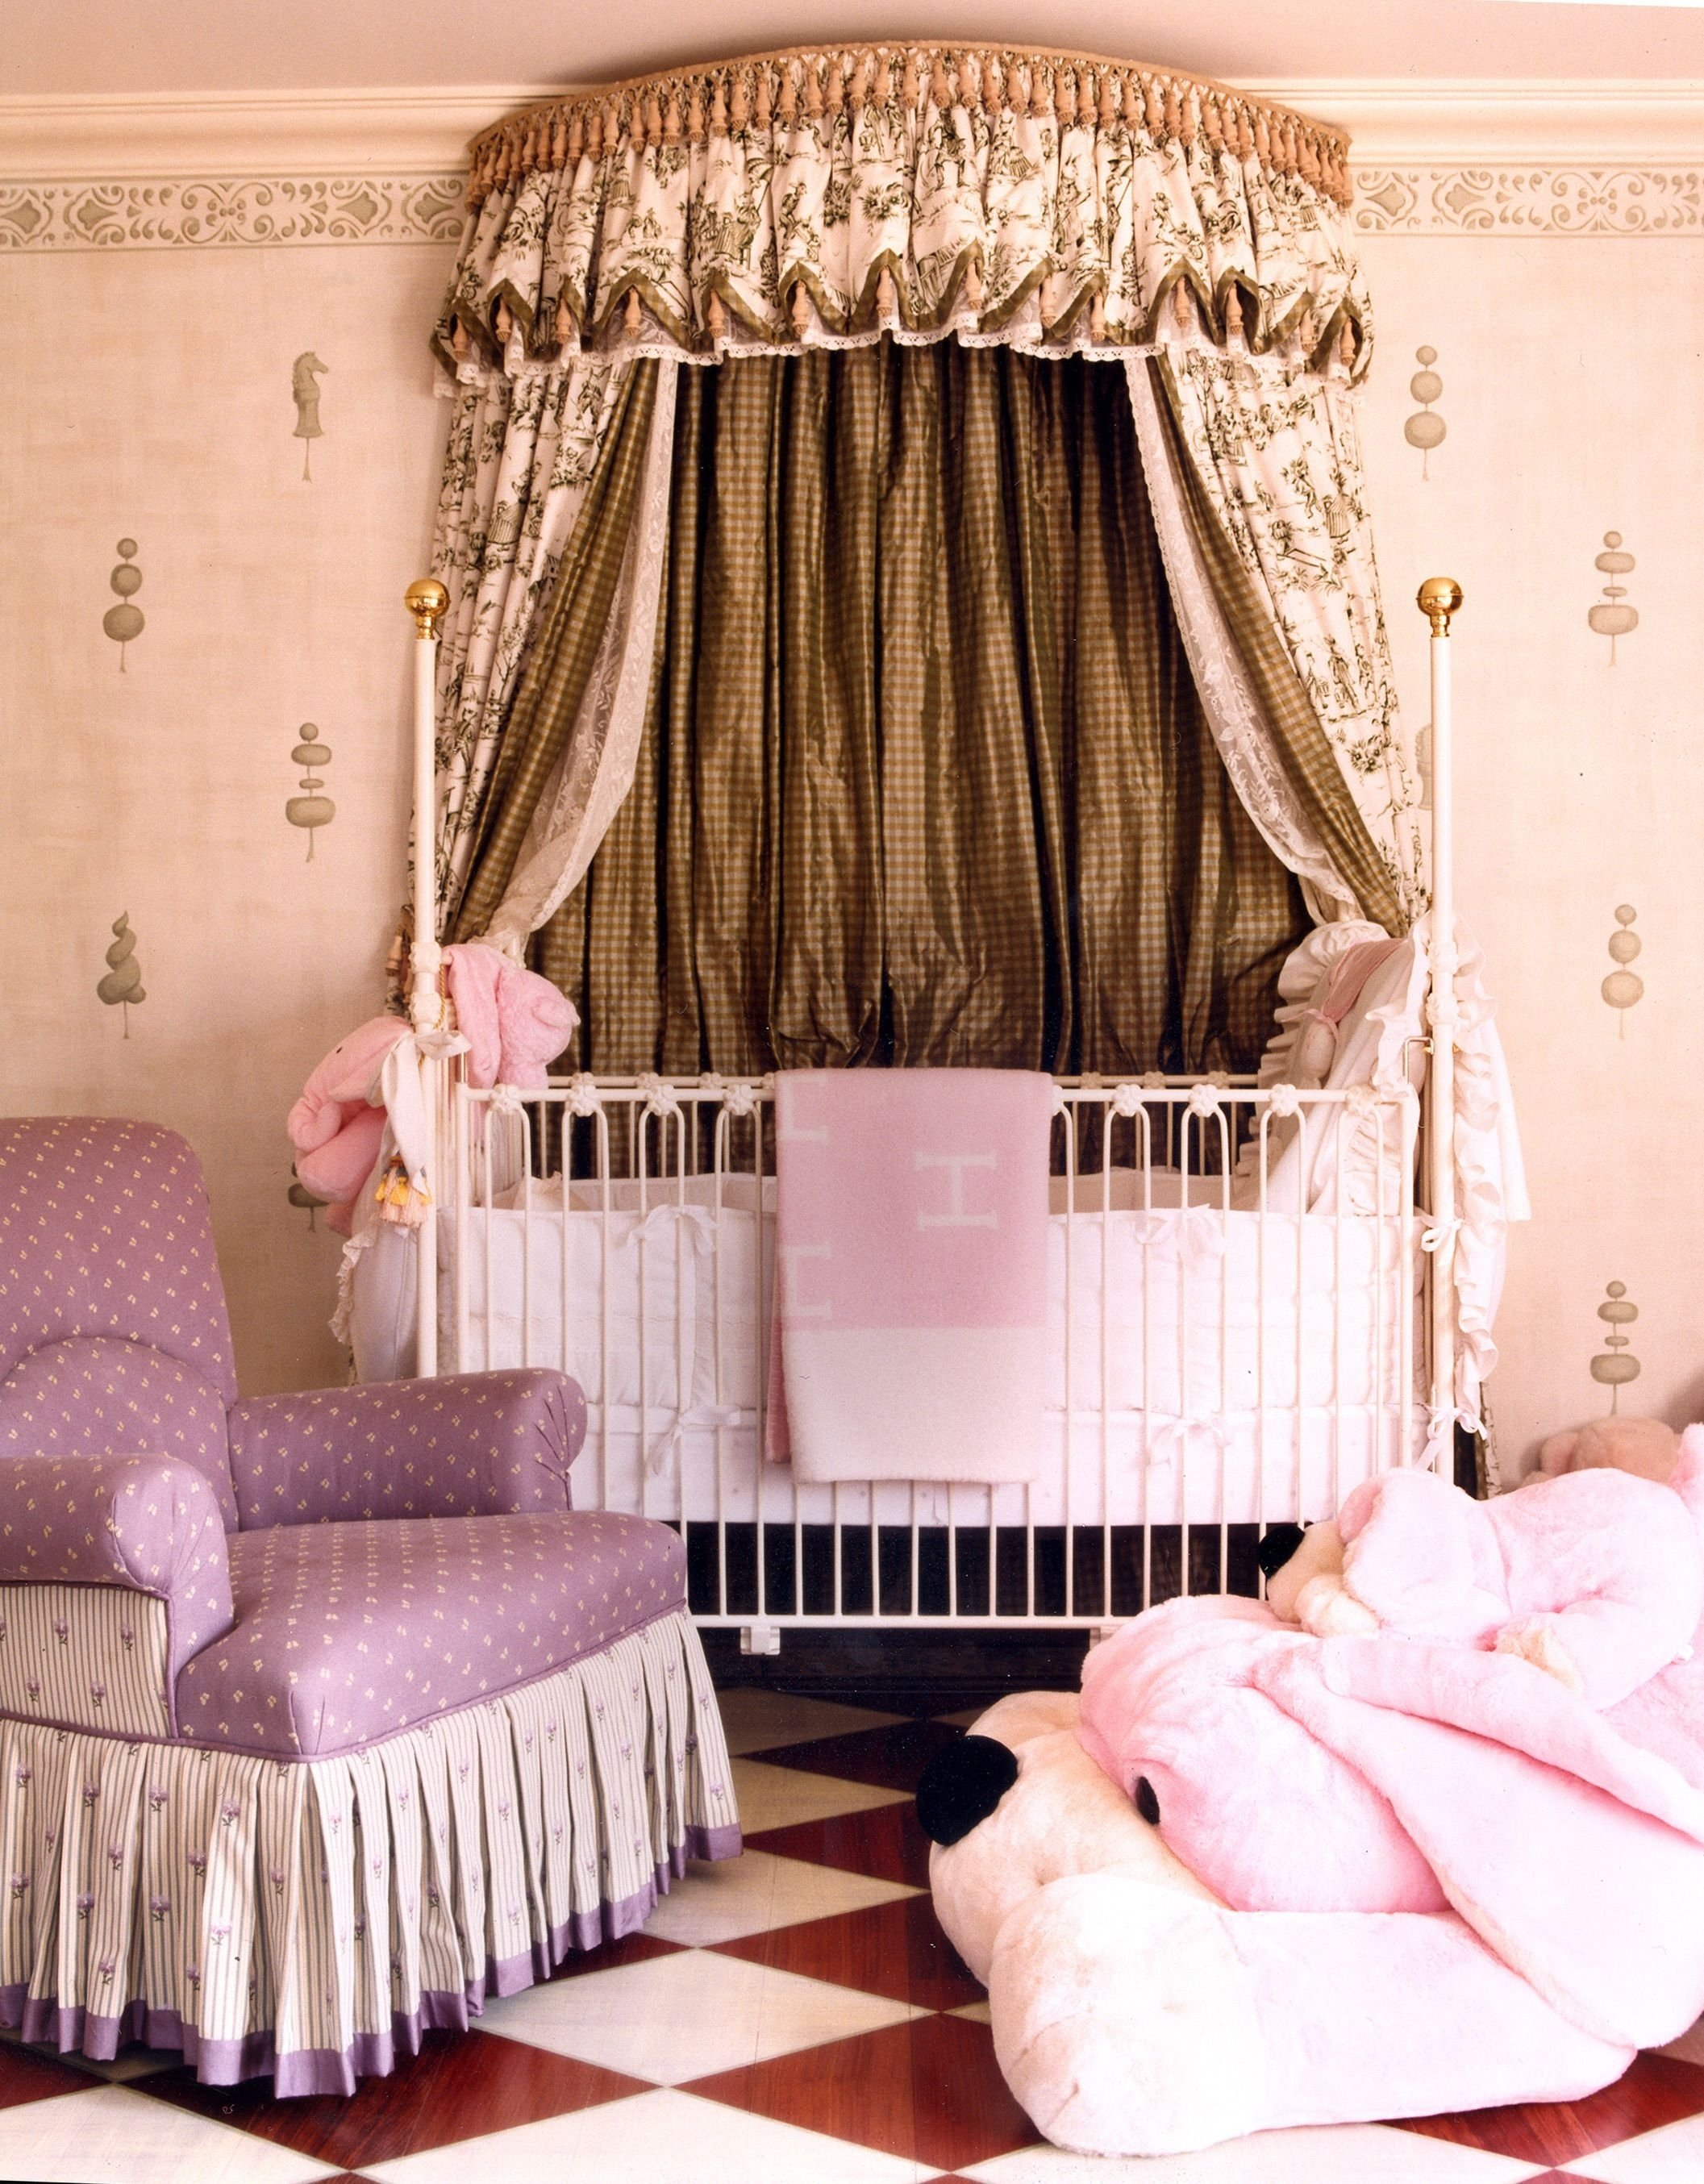 10 Ideal Baby Room Ideas For Girl 7 cute baby girl rooms nursery decorating ideas for baby girls 3